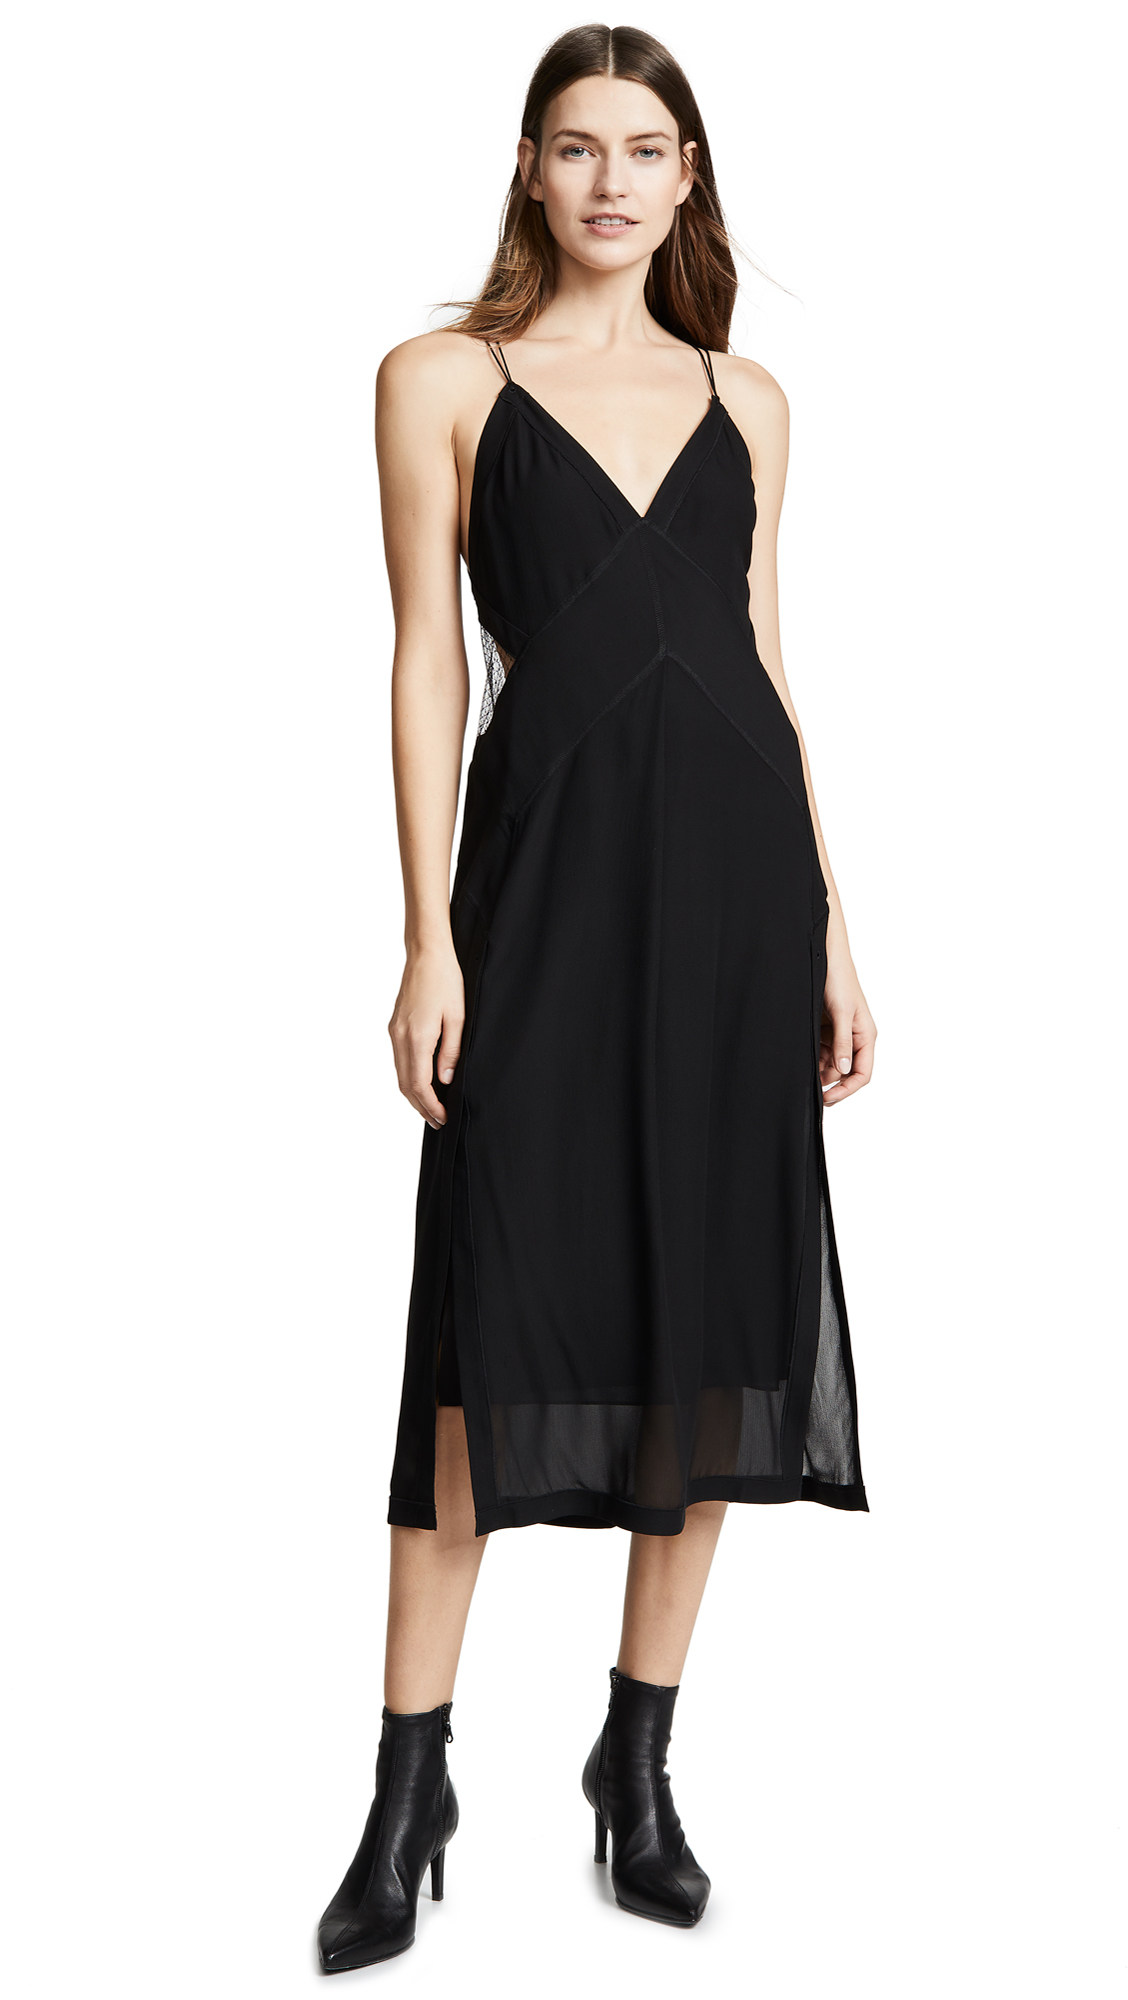 Rag & Bone Anais Silk Dress - Black